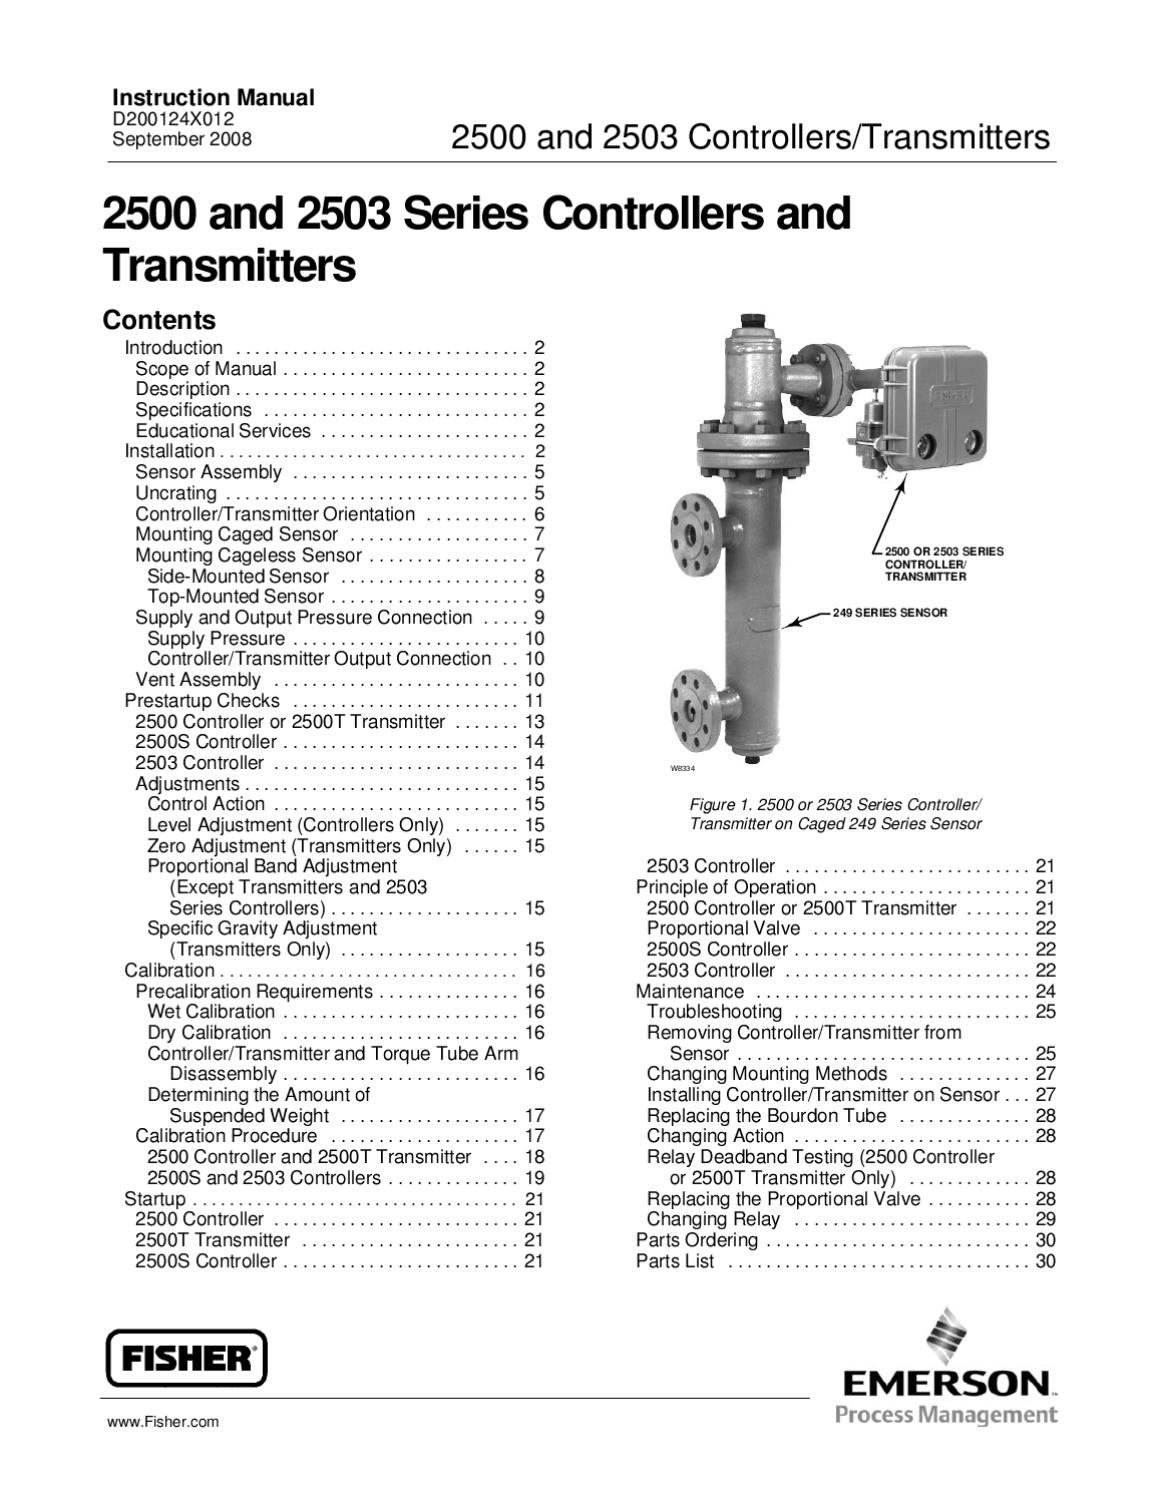 2500~2503 Instruction Manual Sept 2008 by RMC Process